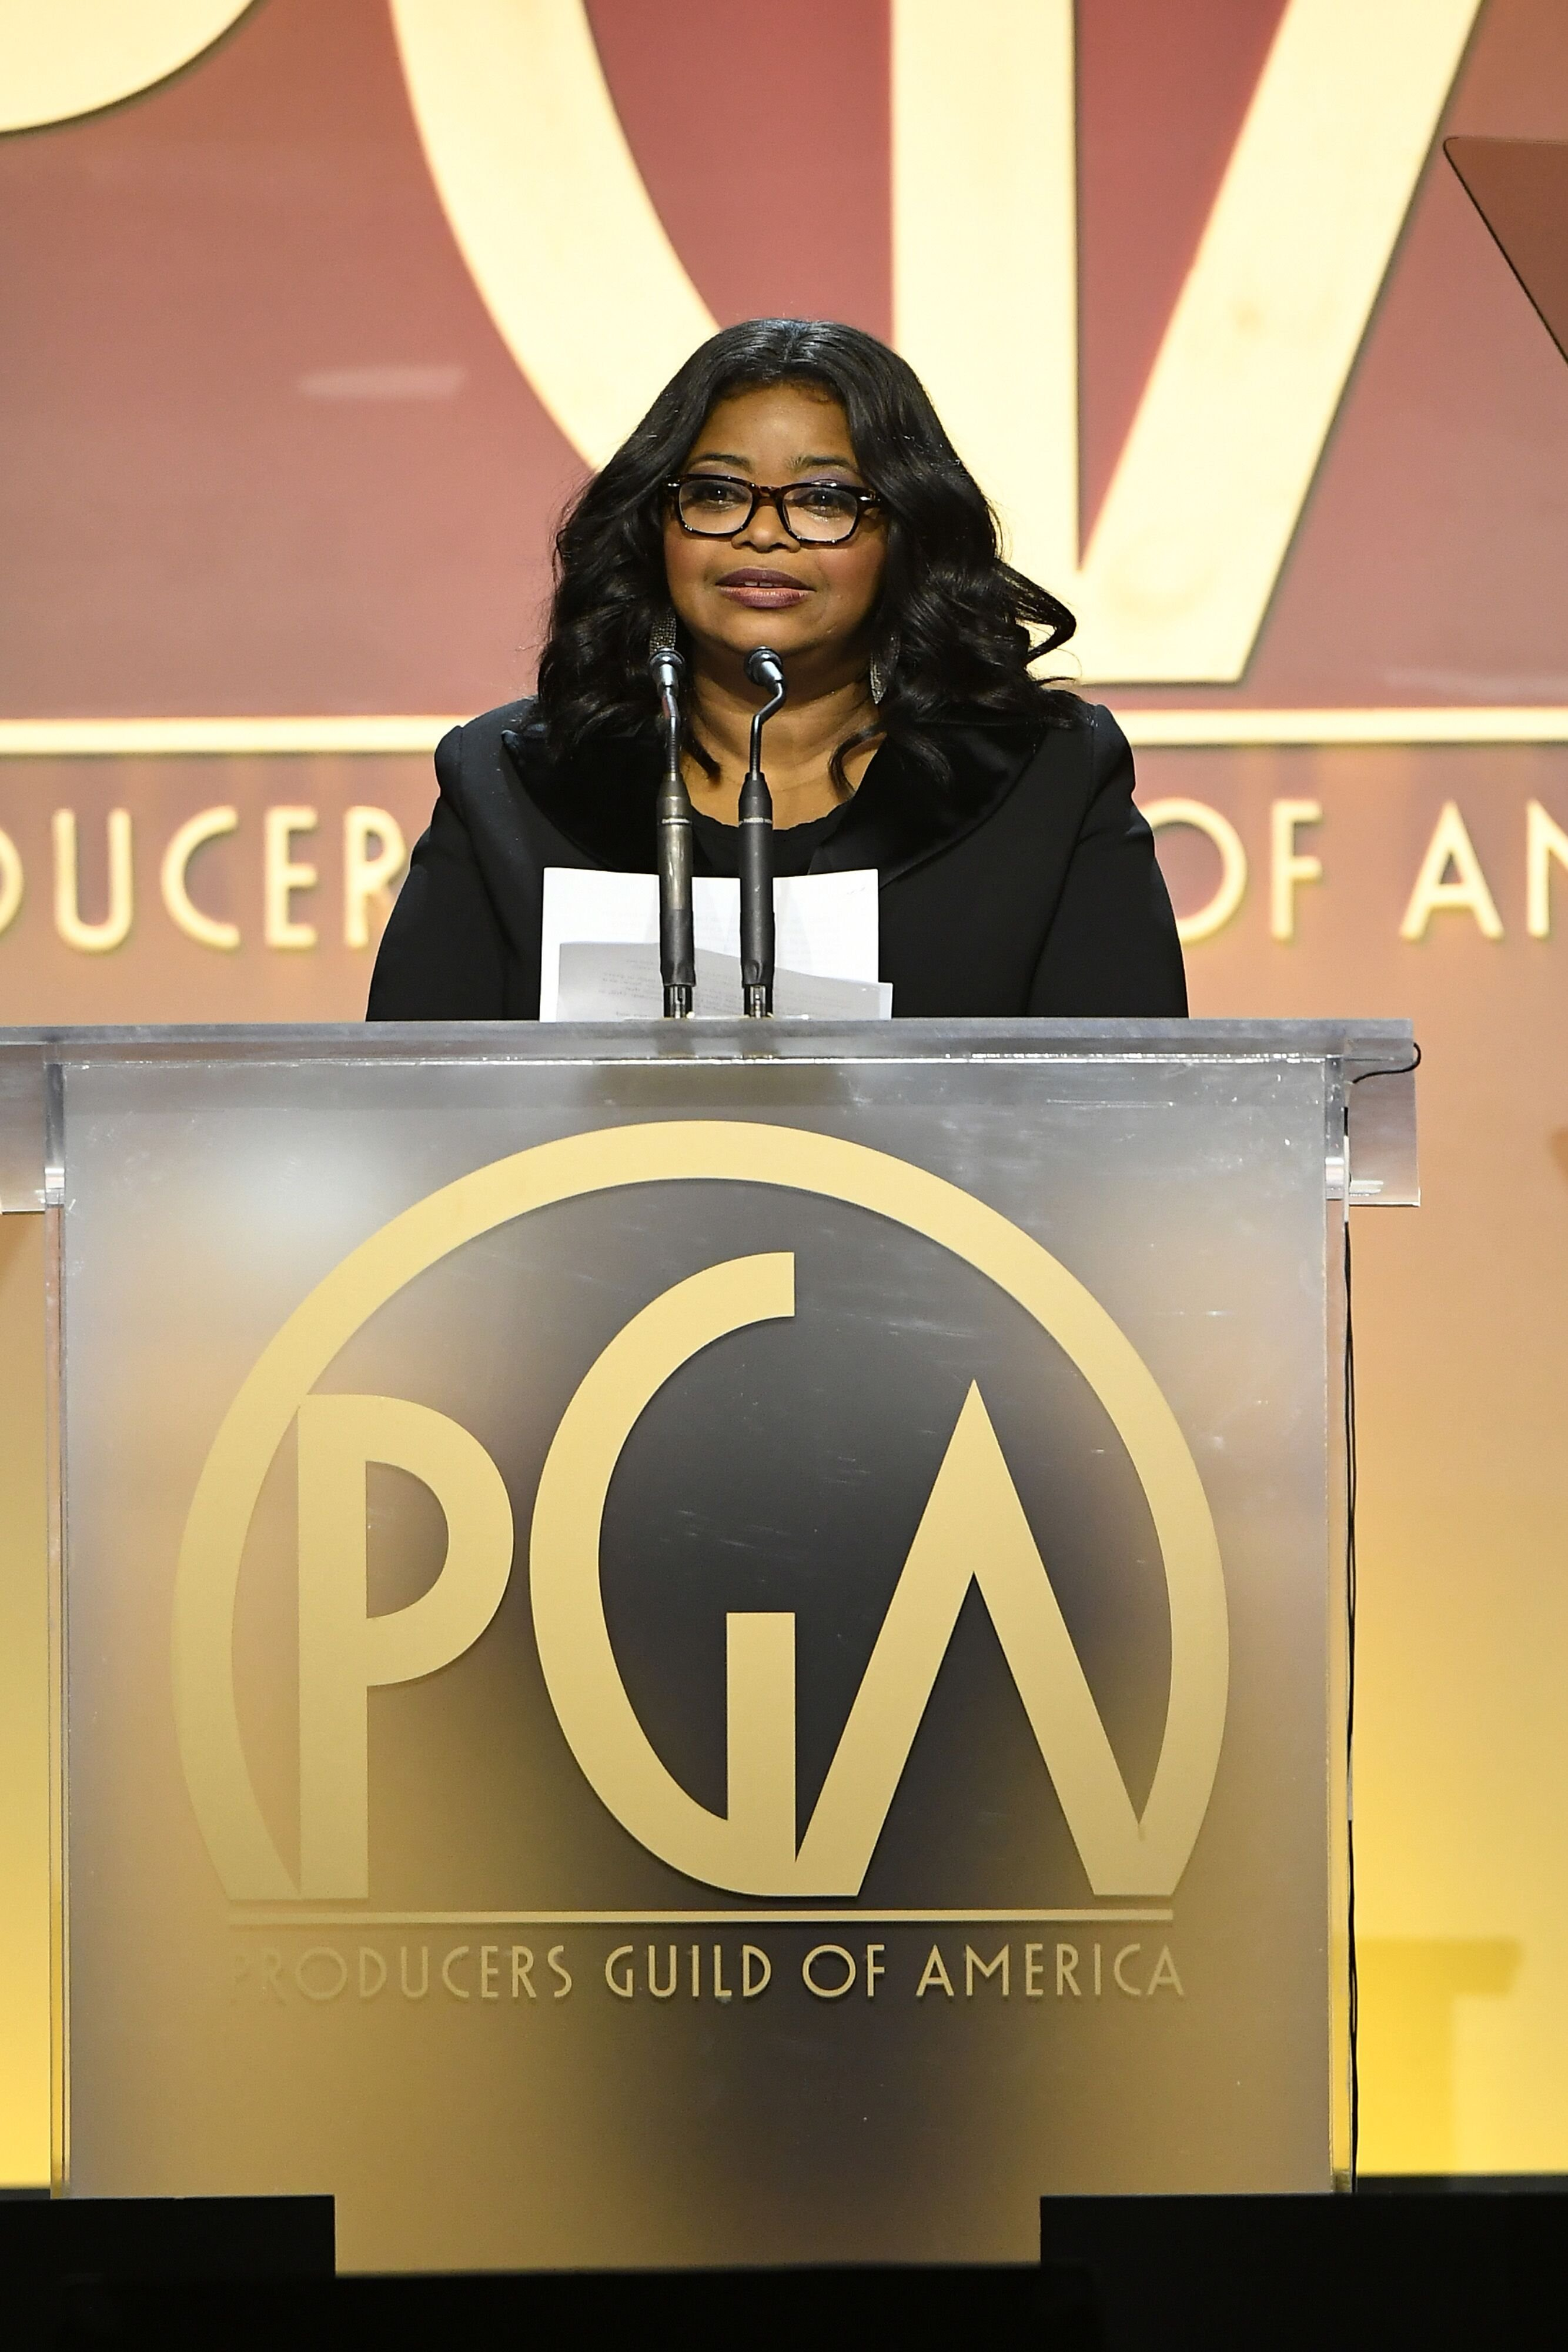 Actress Octavia Spencer at the 2020 Producers Guild Awards/ Source: Getty Images